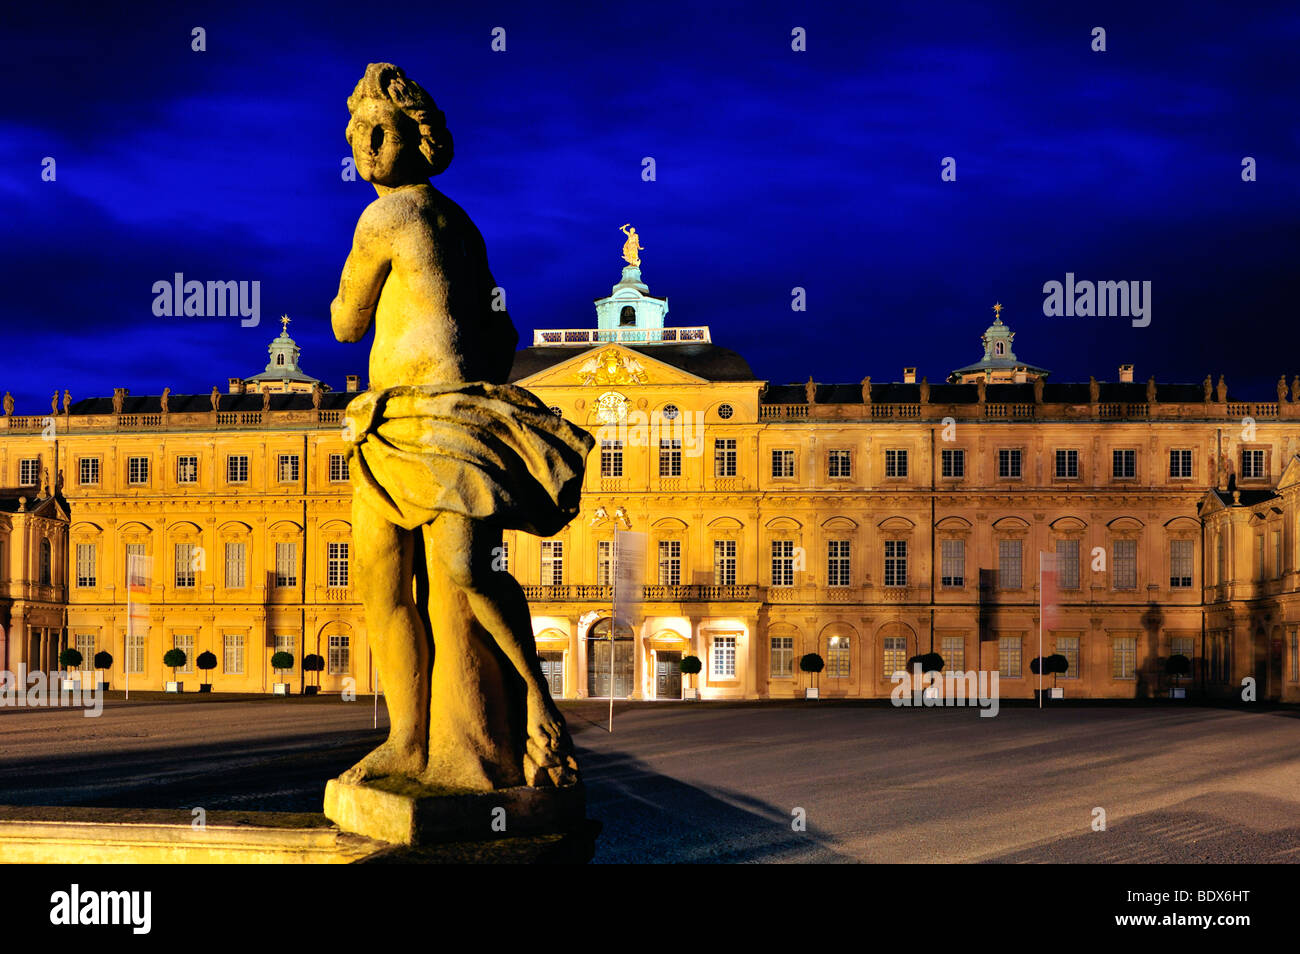 Schloss Rastatt castle seen from the courtyard, Rastatt, Black Forest, Baden-Wuerttemberg, Germany, Europe - Stock Image